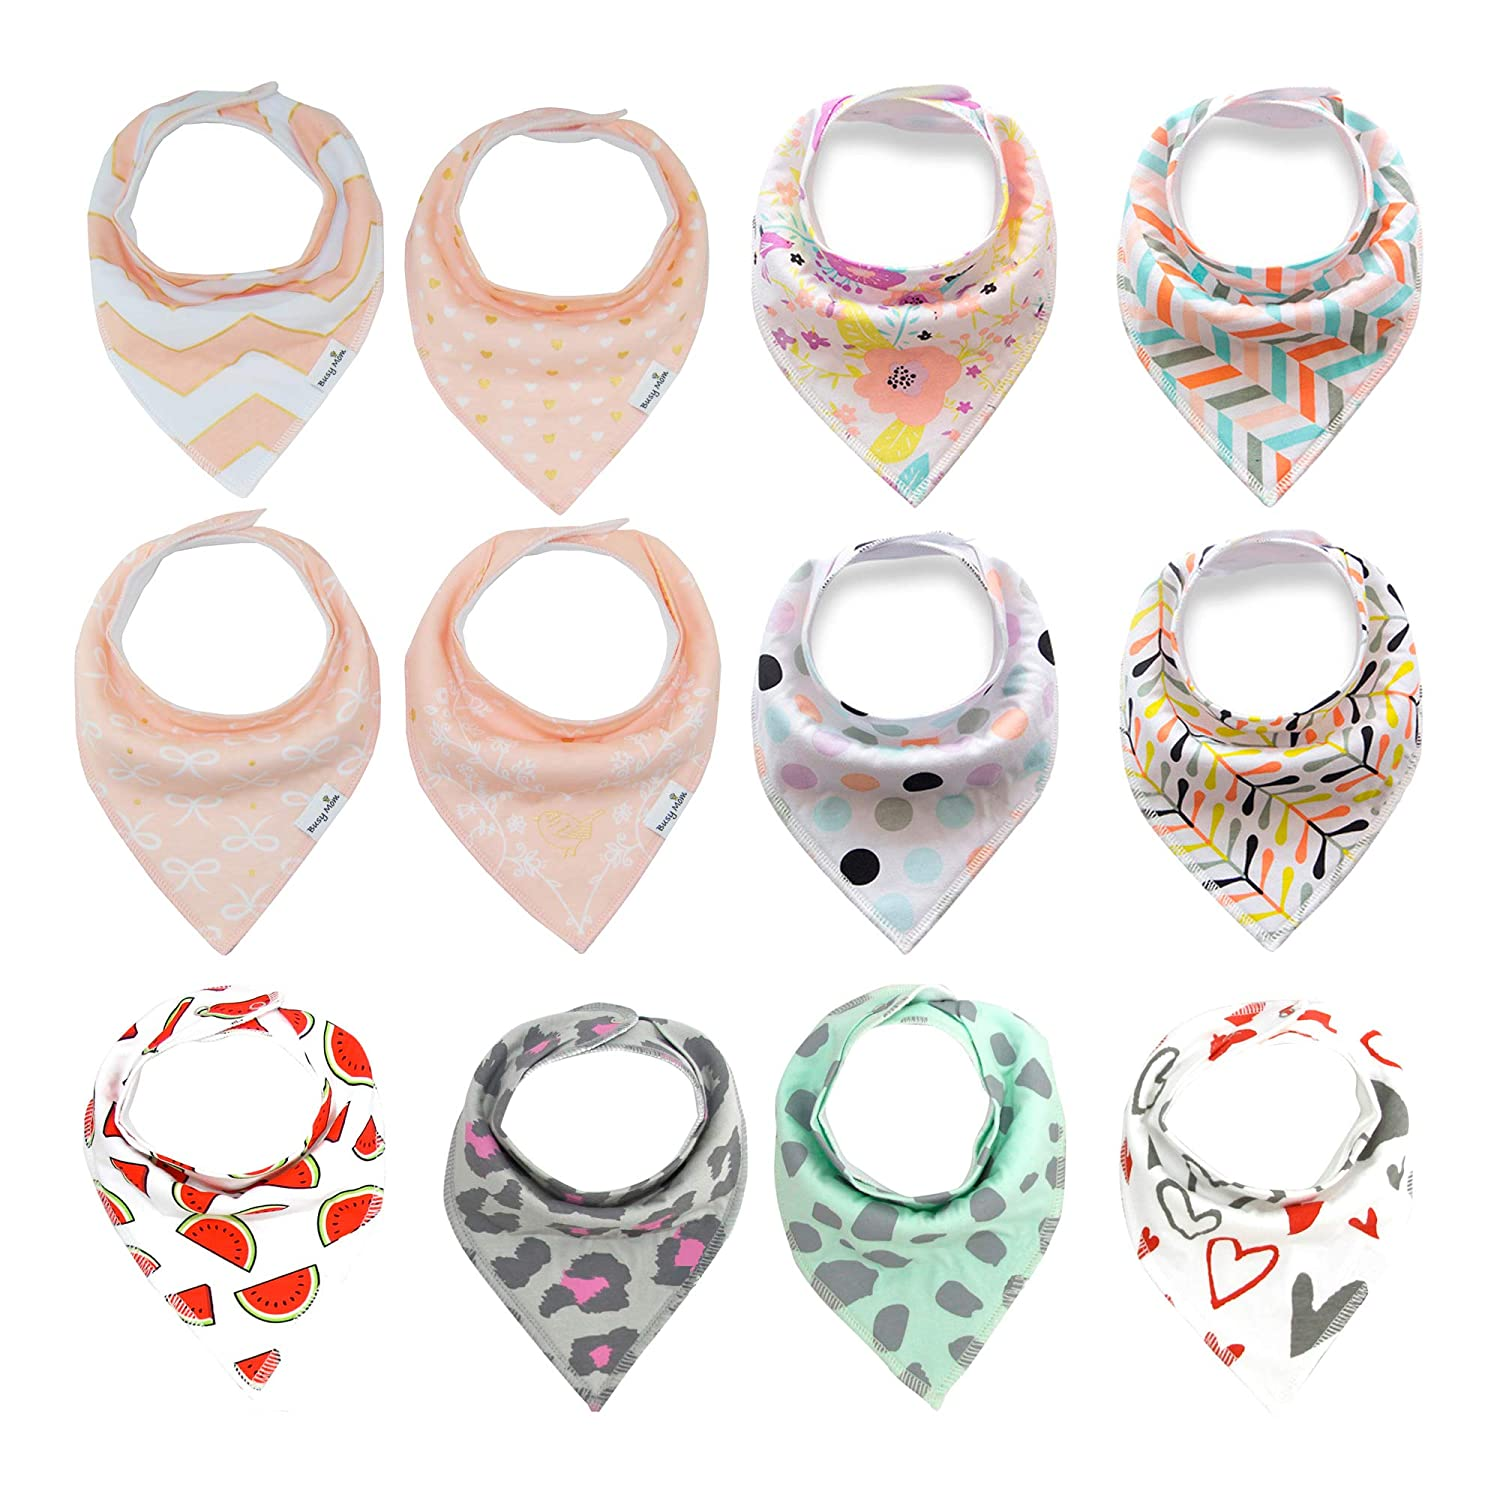 12 Pack Baby Bandana Drool Bibs Super Absorbent Cotton Feeding Bibs